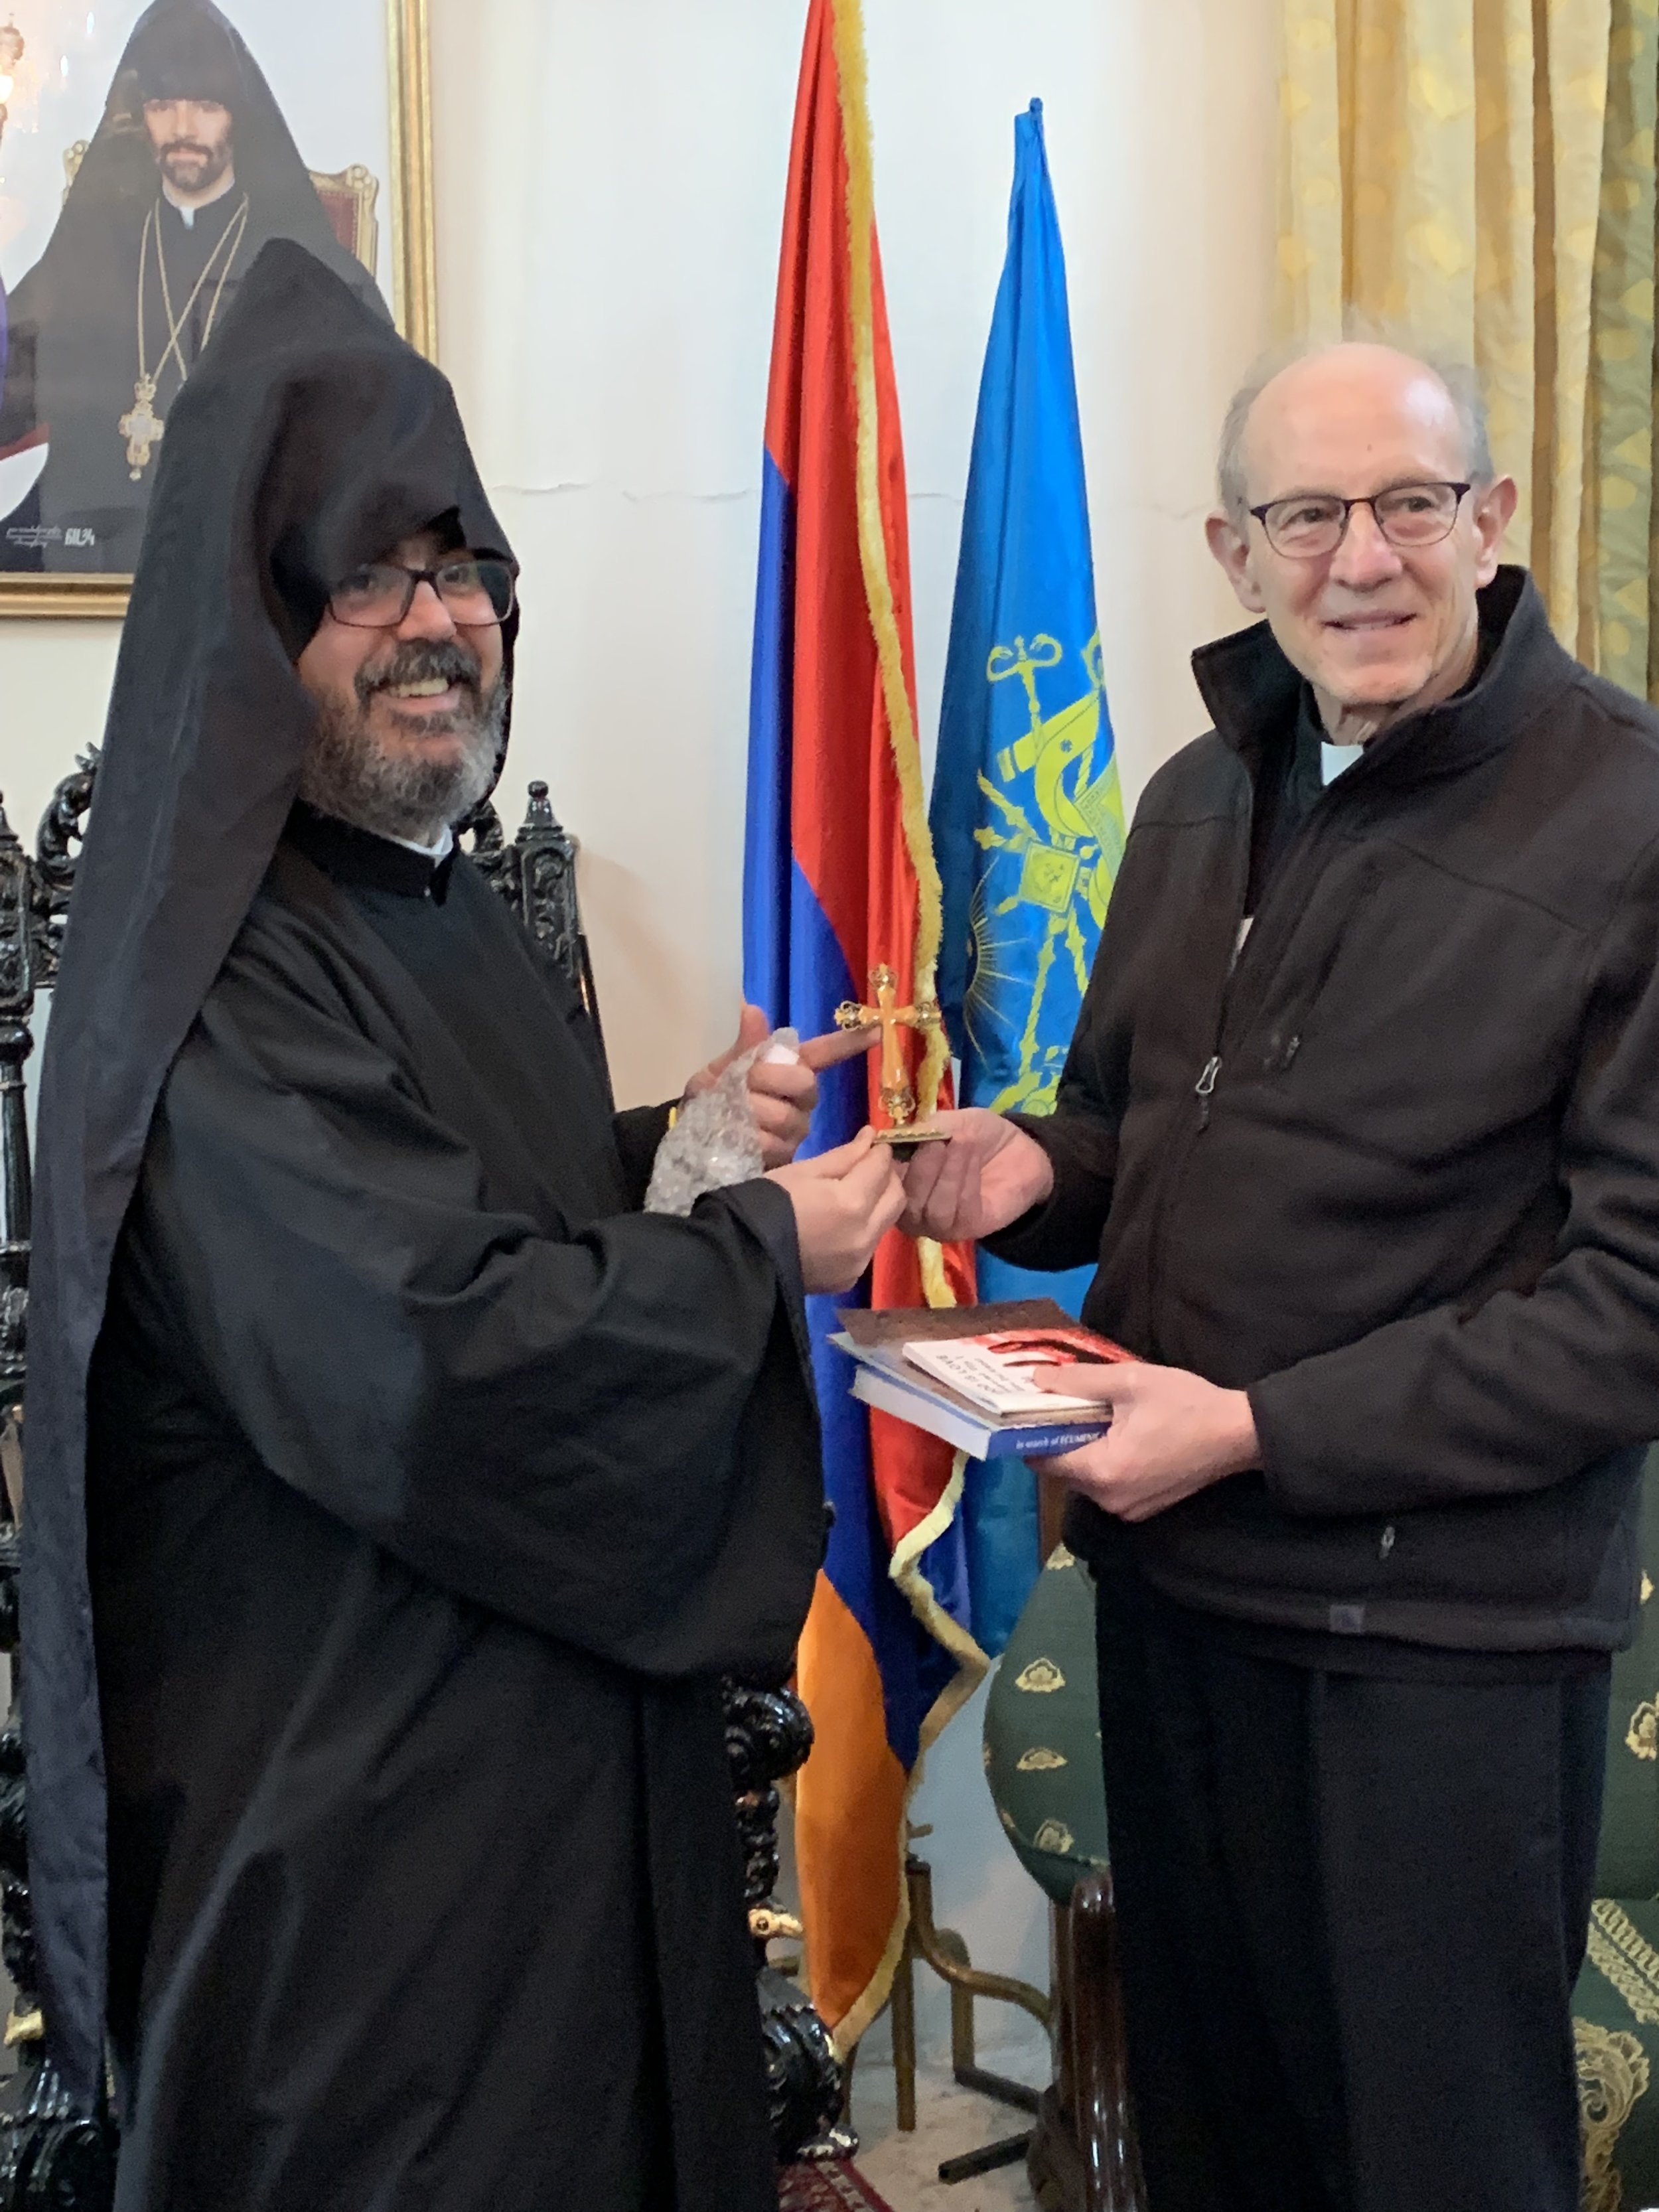 Rob receives the gift of an Armenian cross from the Armenian Orthodox bishop Reuben Abandian